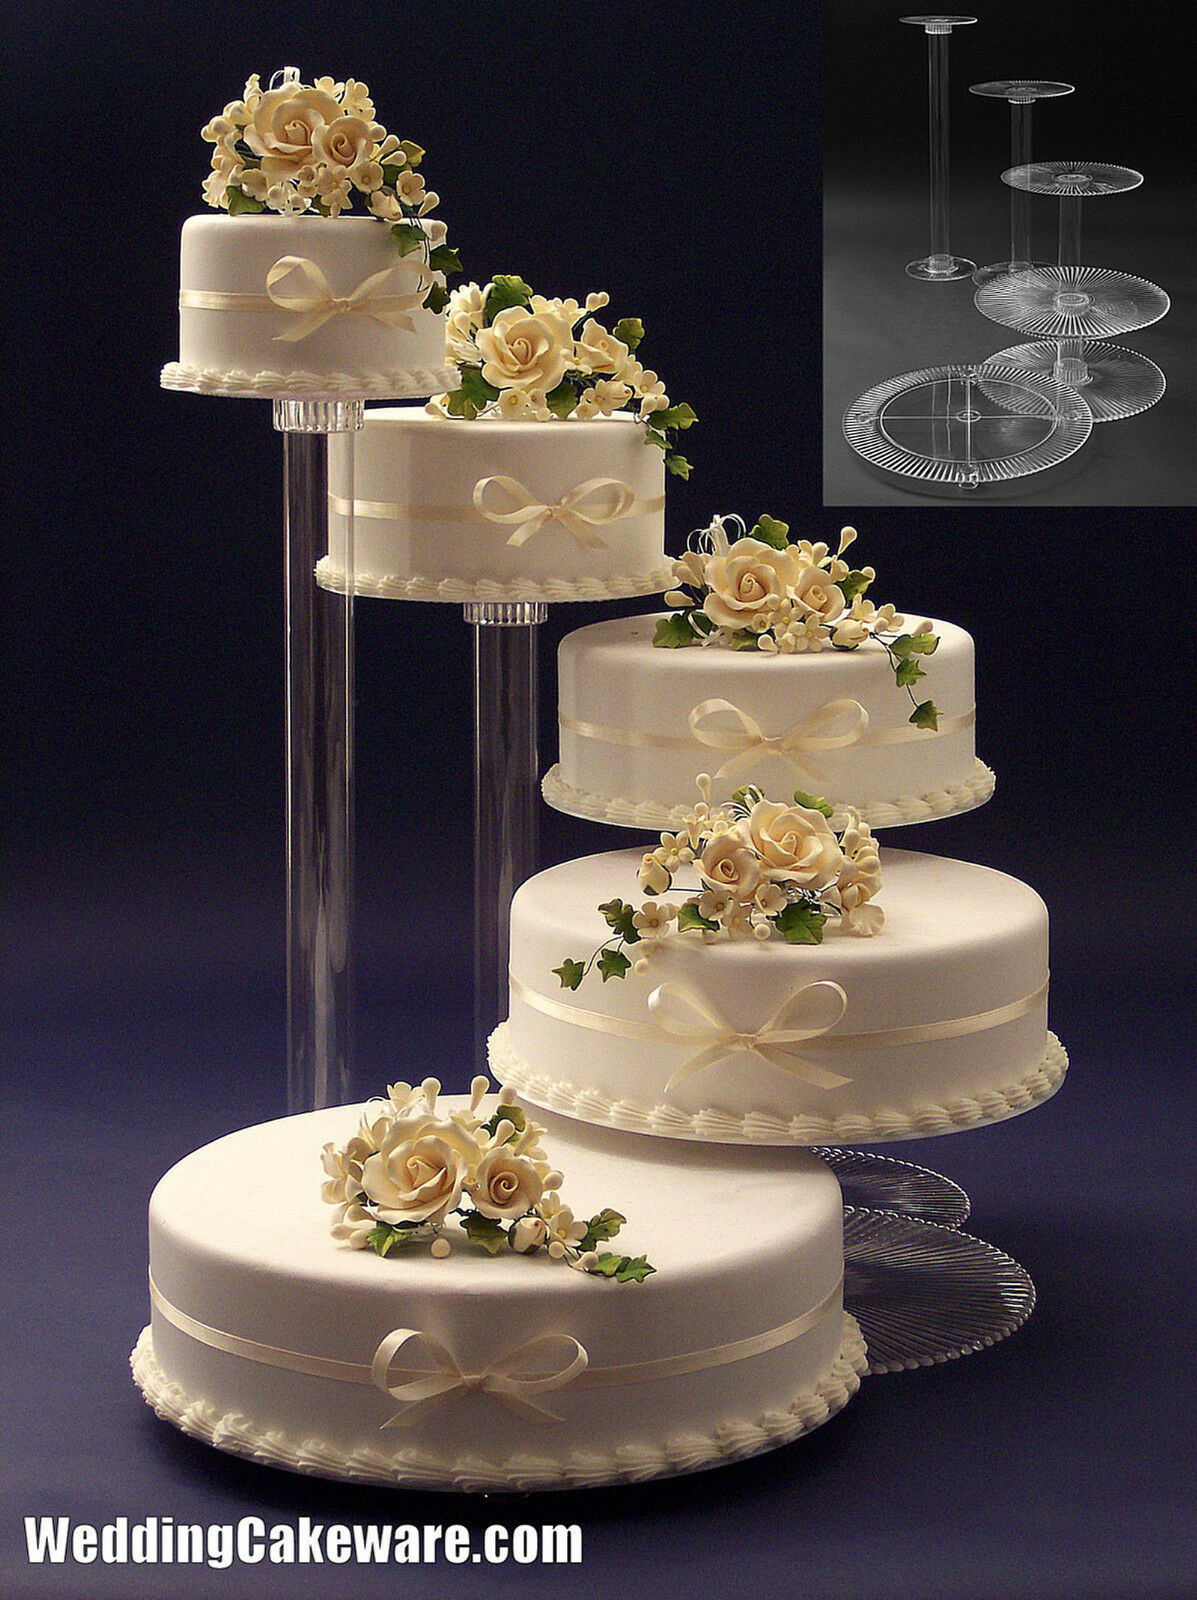 Cake Plateaus For Wedding Cakes  Cake Stand Wedding Bling Wedding Cake Stand Cupcake Base